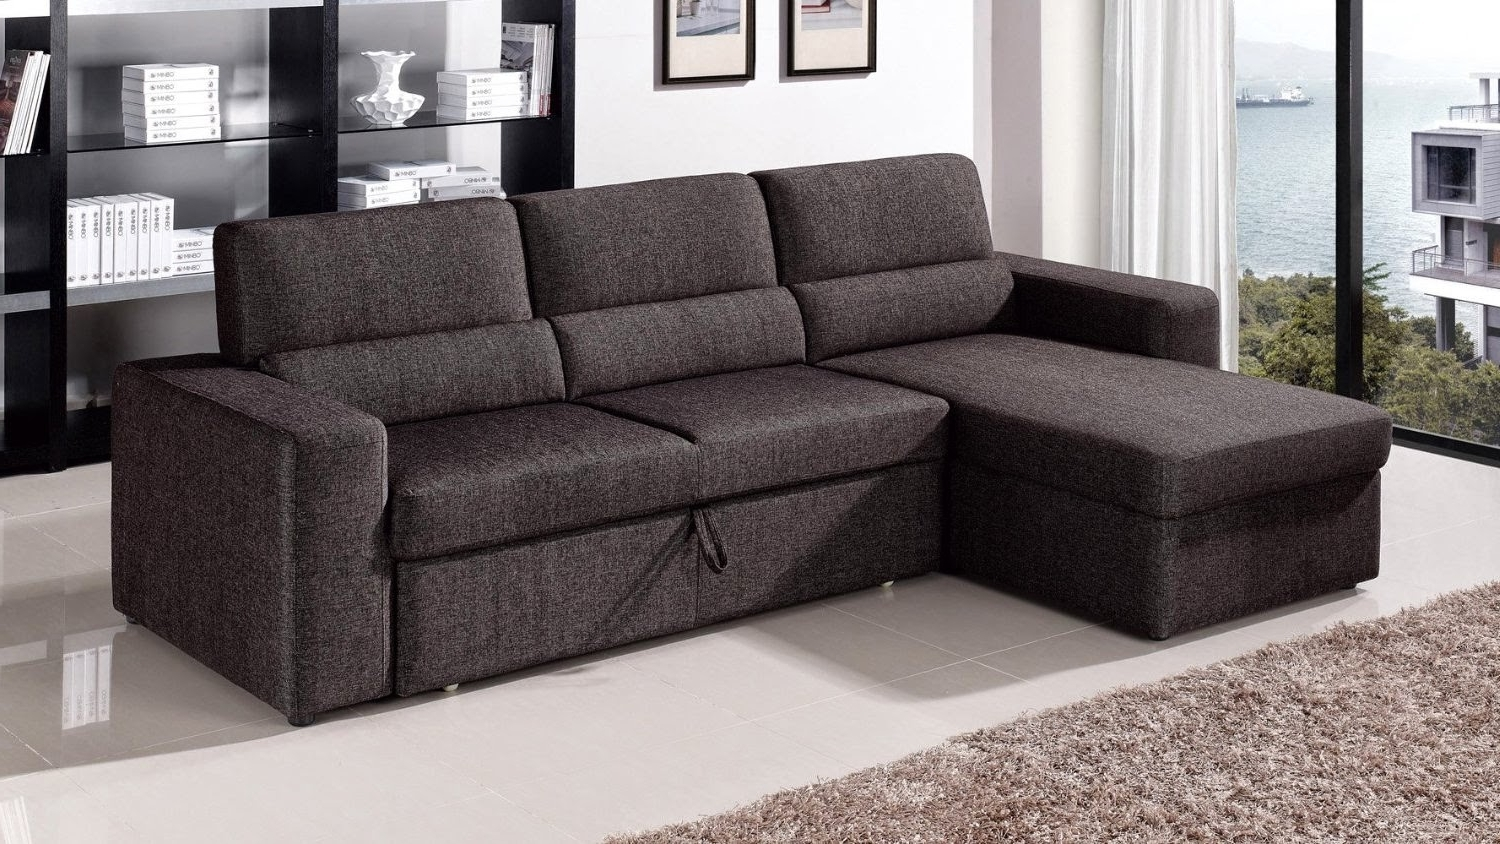 2017 Elegant Sectional Sofa With Pull Out Sleeper 30 About Remodel L Intended For L Shaped Sectional Sleeper Sofas (View 1 of 15)